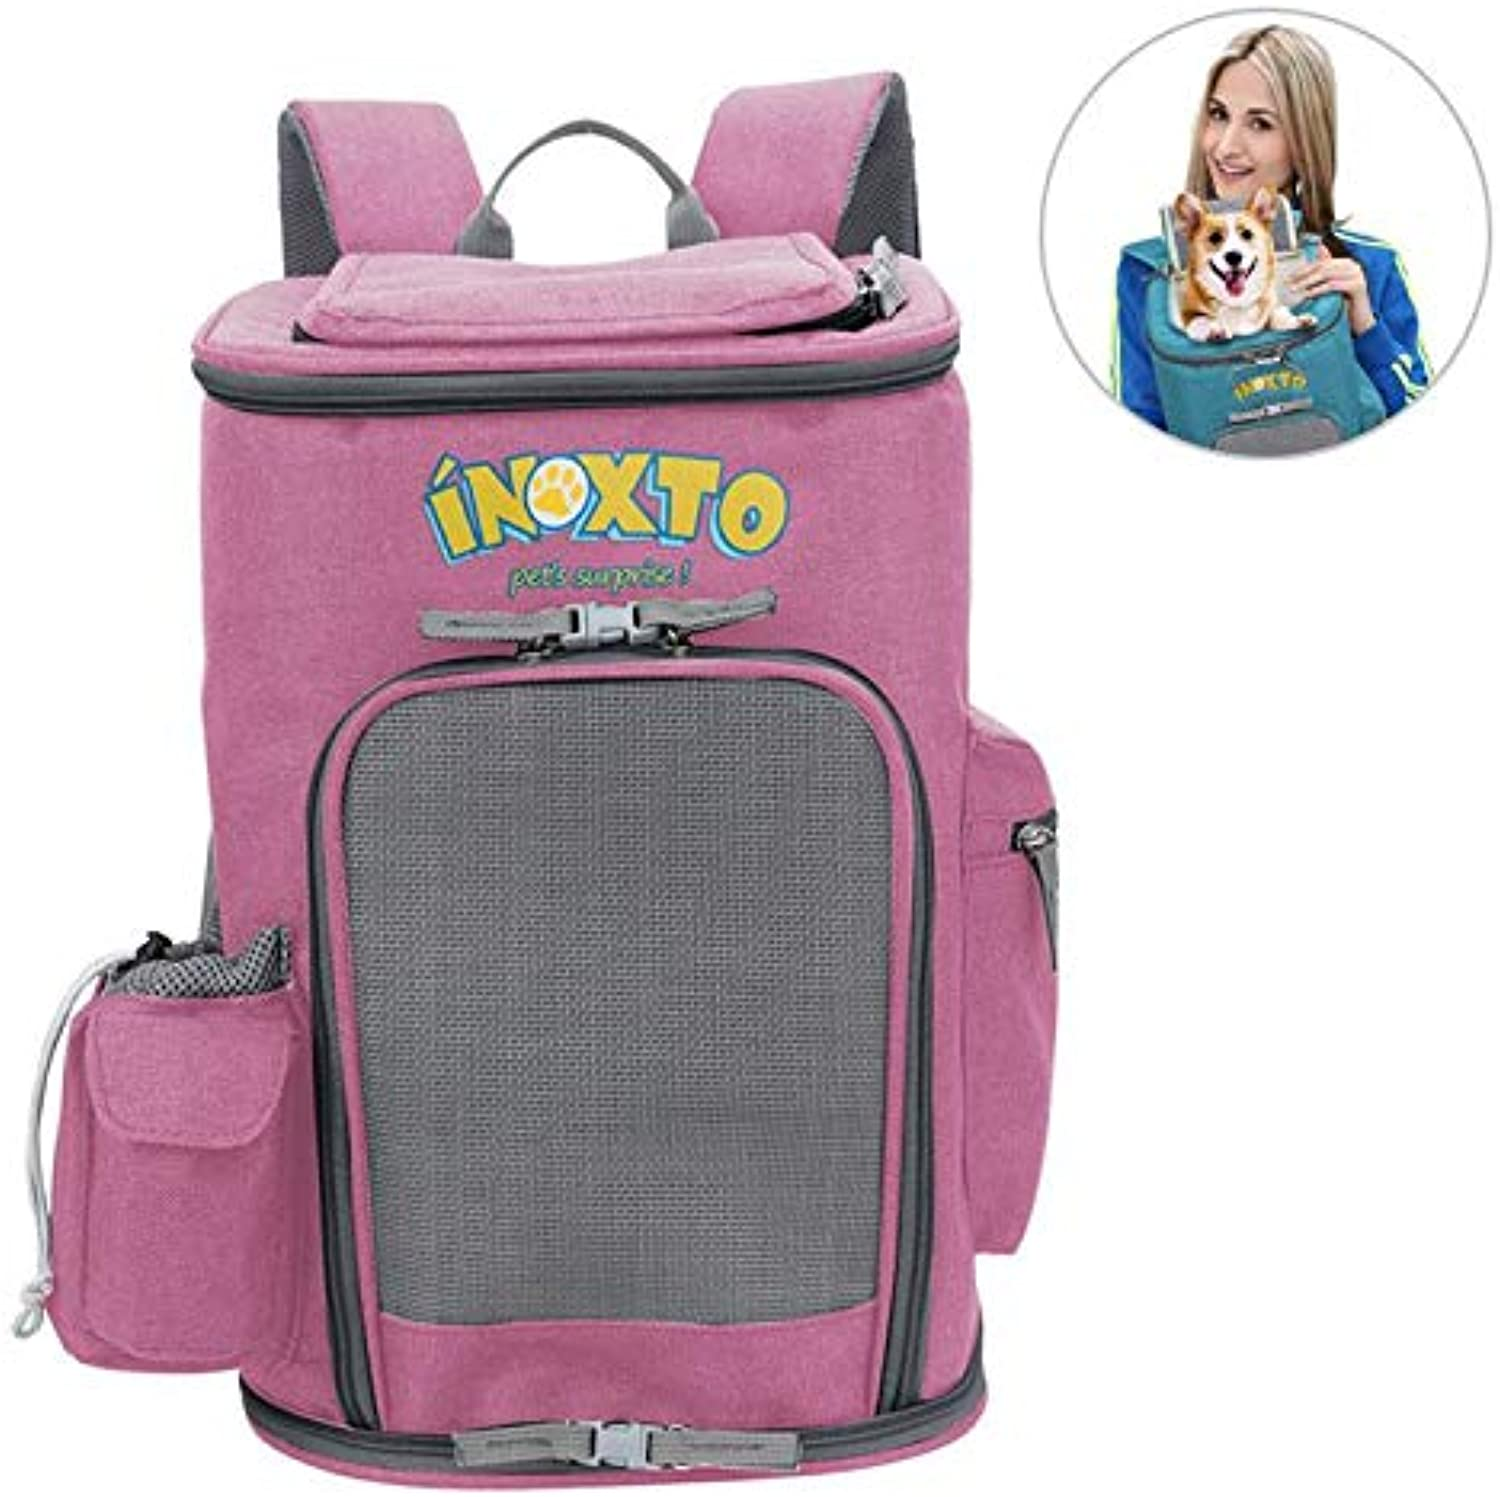 Dog Carrier Backpack, Womdee Pet Carrier Backpack for Dogs & Cats, European Standard Breathable Mesh, Ventilation Design,Fleece Padding, Hold Pets Up to 29LBS  Pink